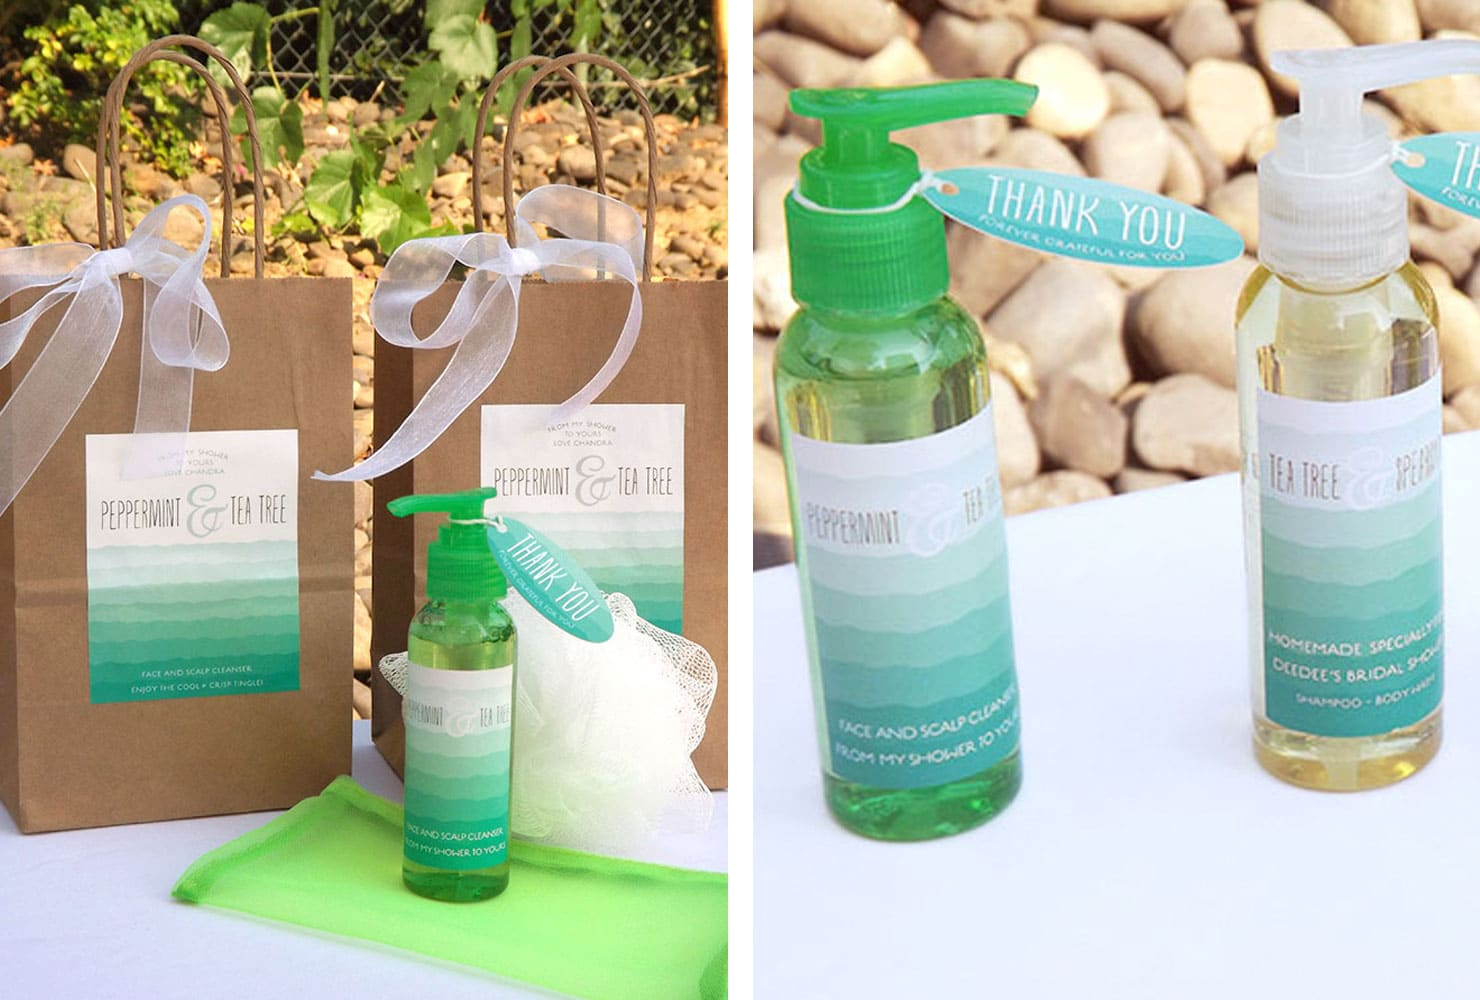 Peppermint and tea tree cleanser gift bags with white loofa